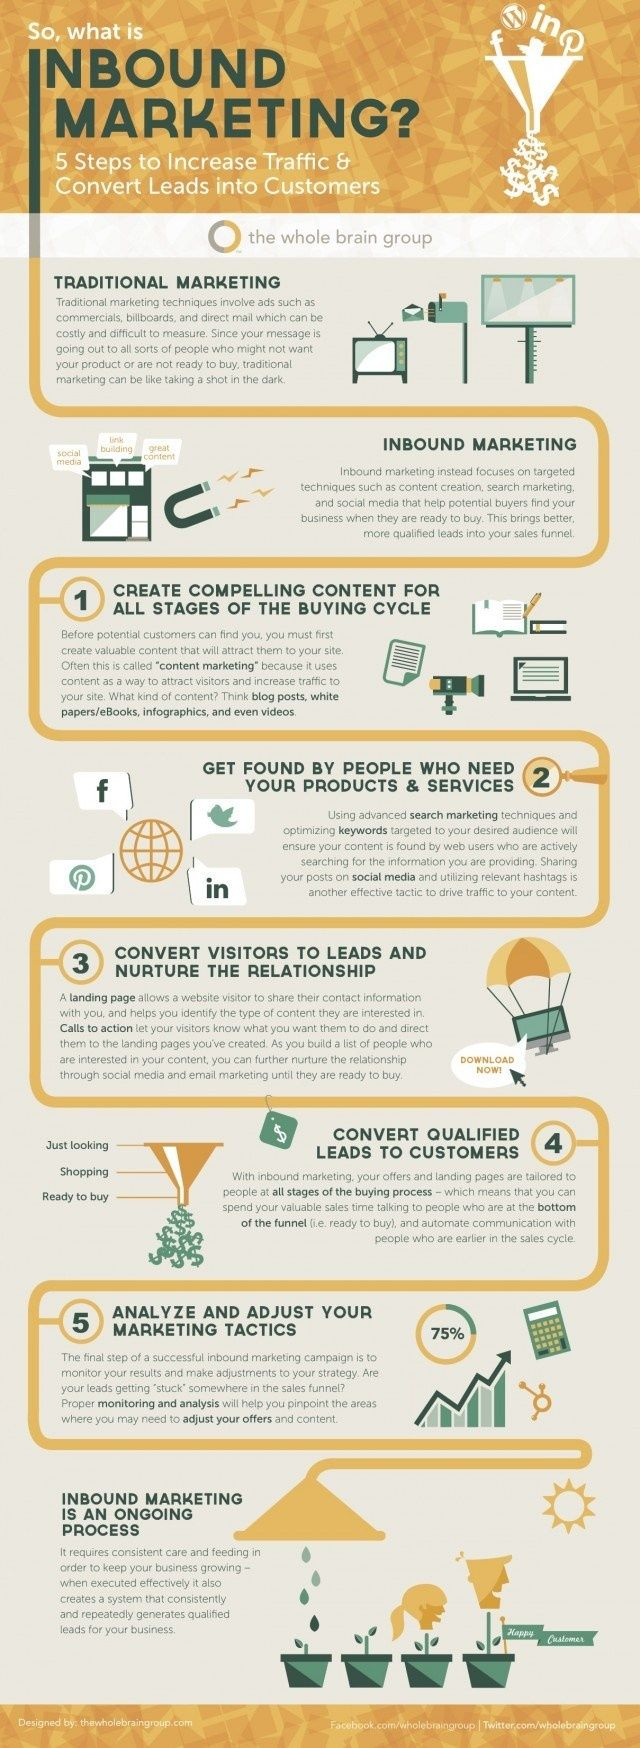 Inbound Marketing: 5 Steps to Increase Traffic & Convert Leads into Customers